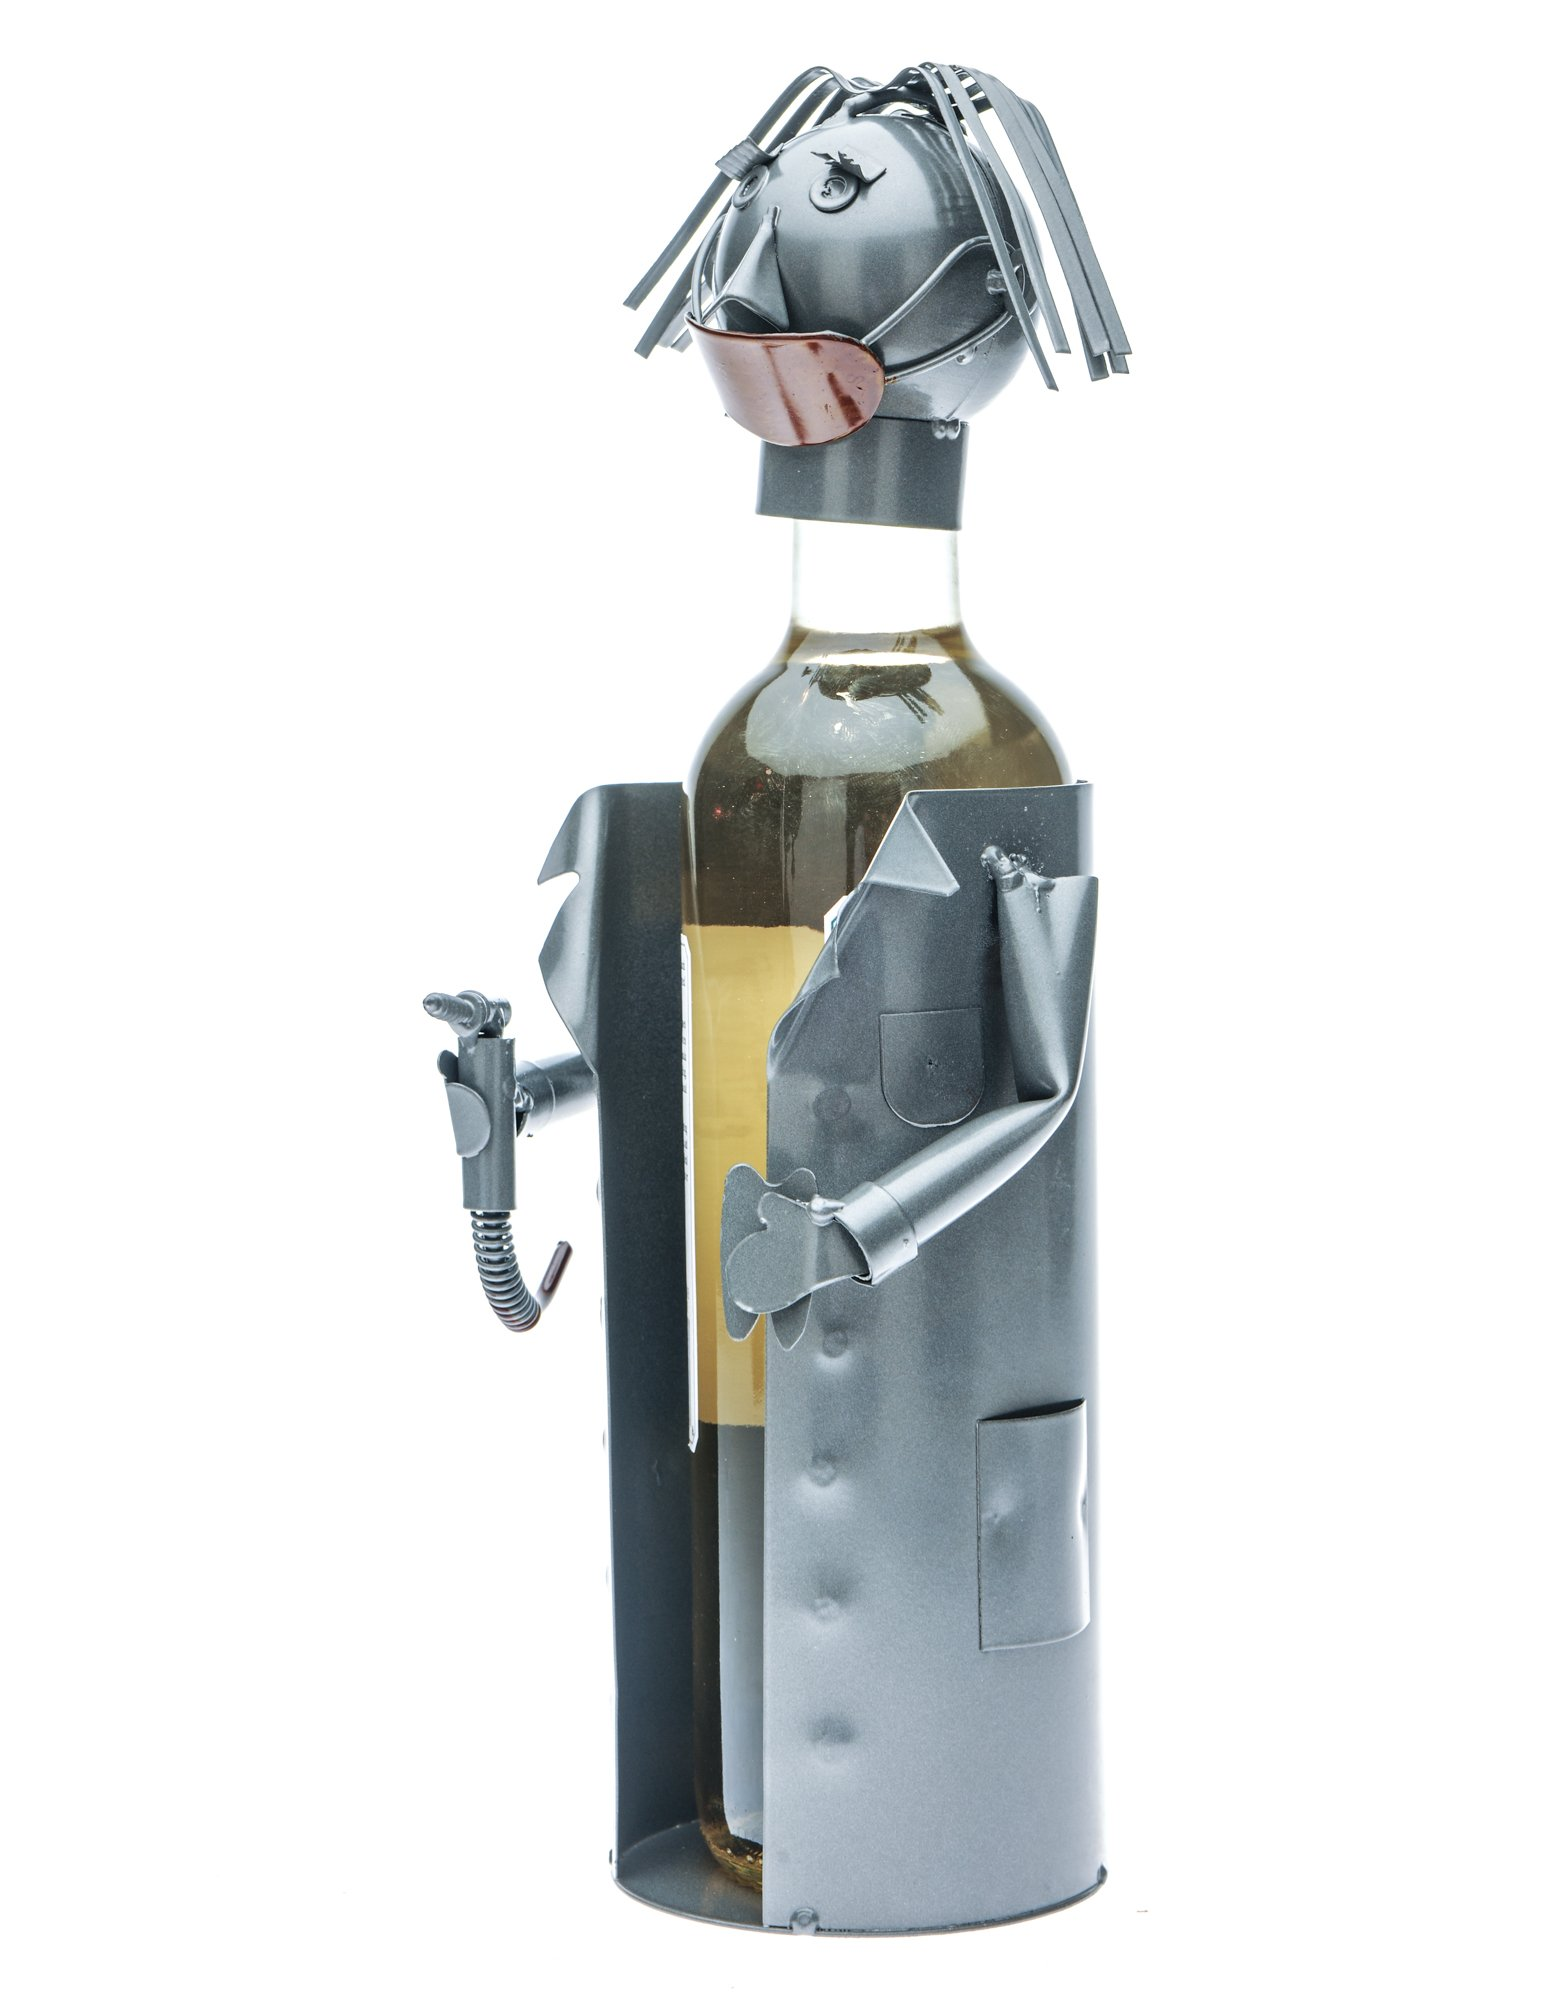 Female Dentist (Wearing a Coat,Mouth Is Covered with Mask, Holding a Drill Plus a Tray) Wine Bottle Holder Plus a Wine Foil Cutter and a Wine Bottle Vacuum Stopper by Upscale Innovations (Image #3)